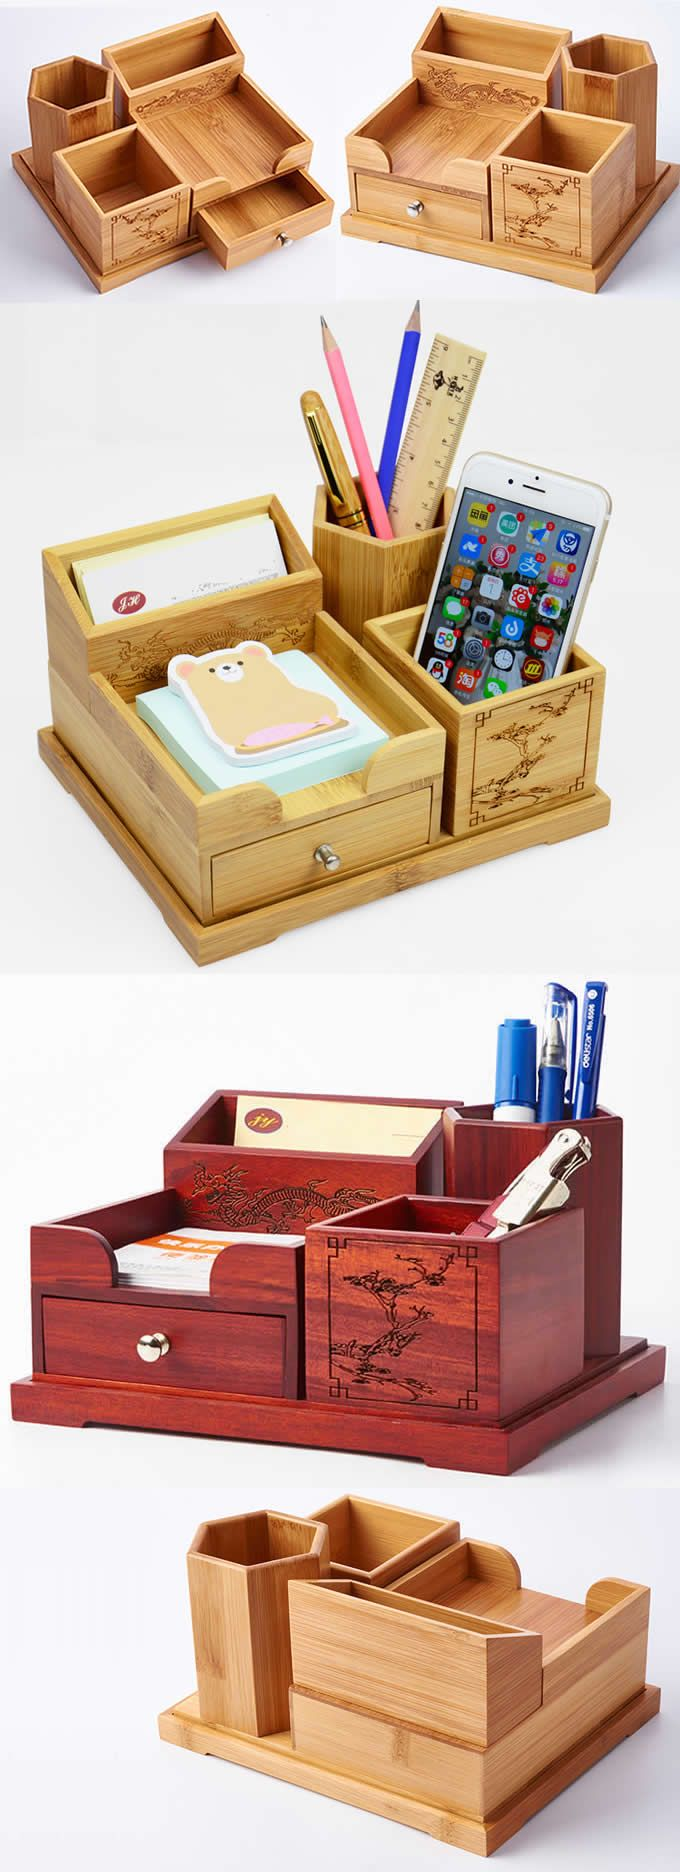 4 compartments Wooden Office Desk Organizer Collection Pen Pencils ...